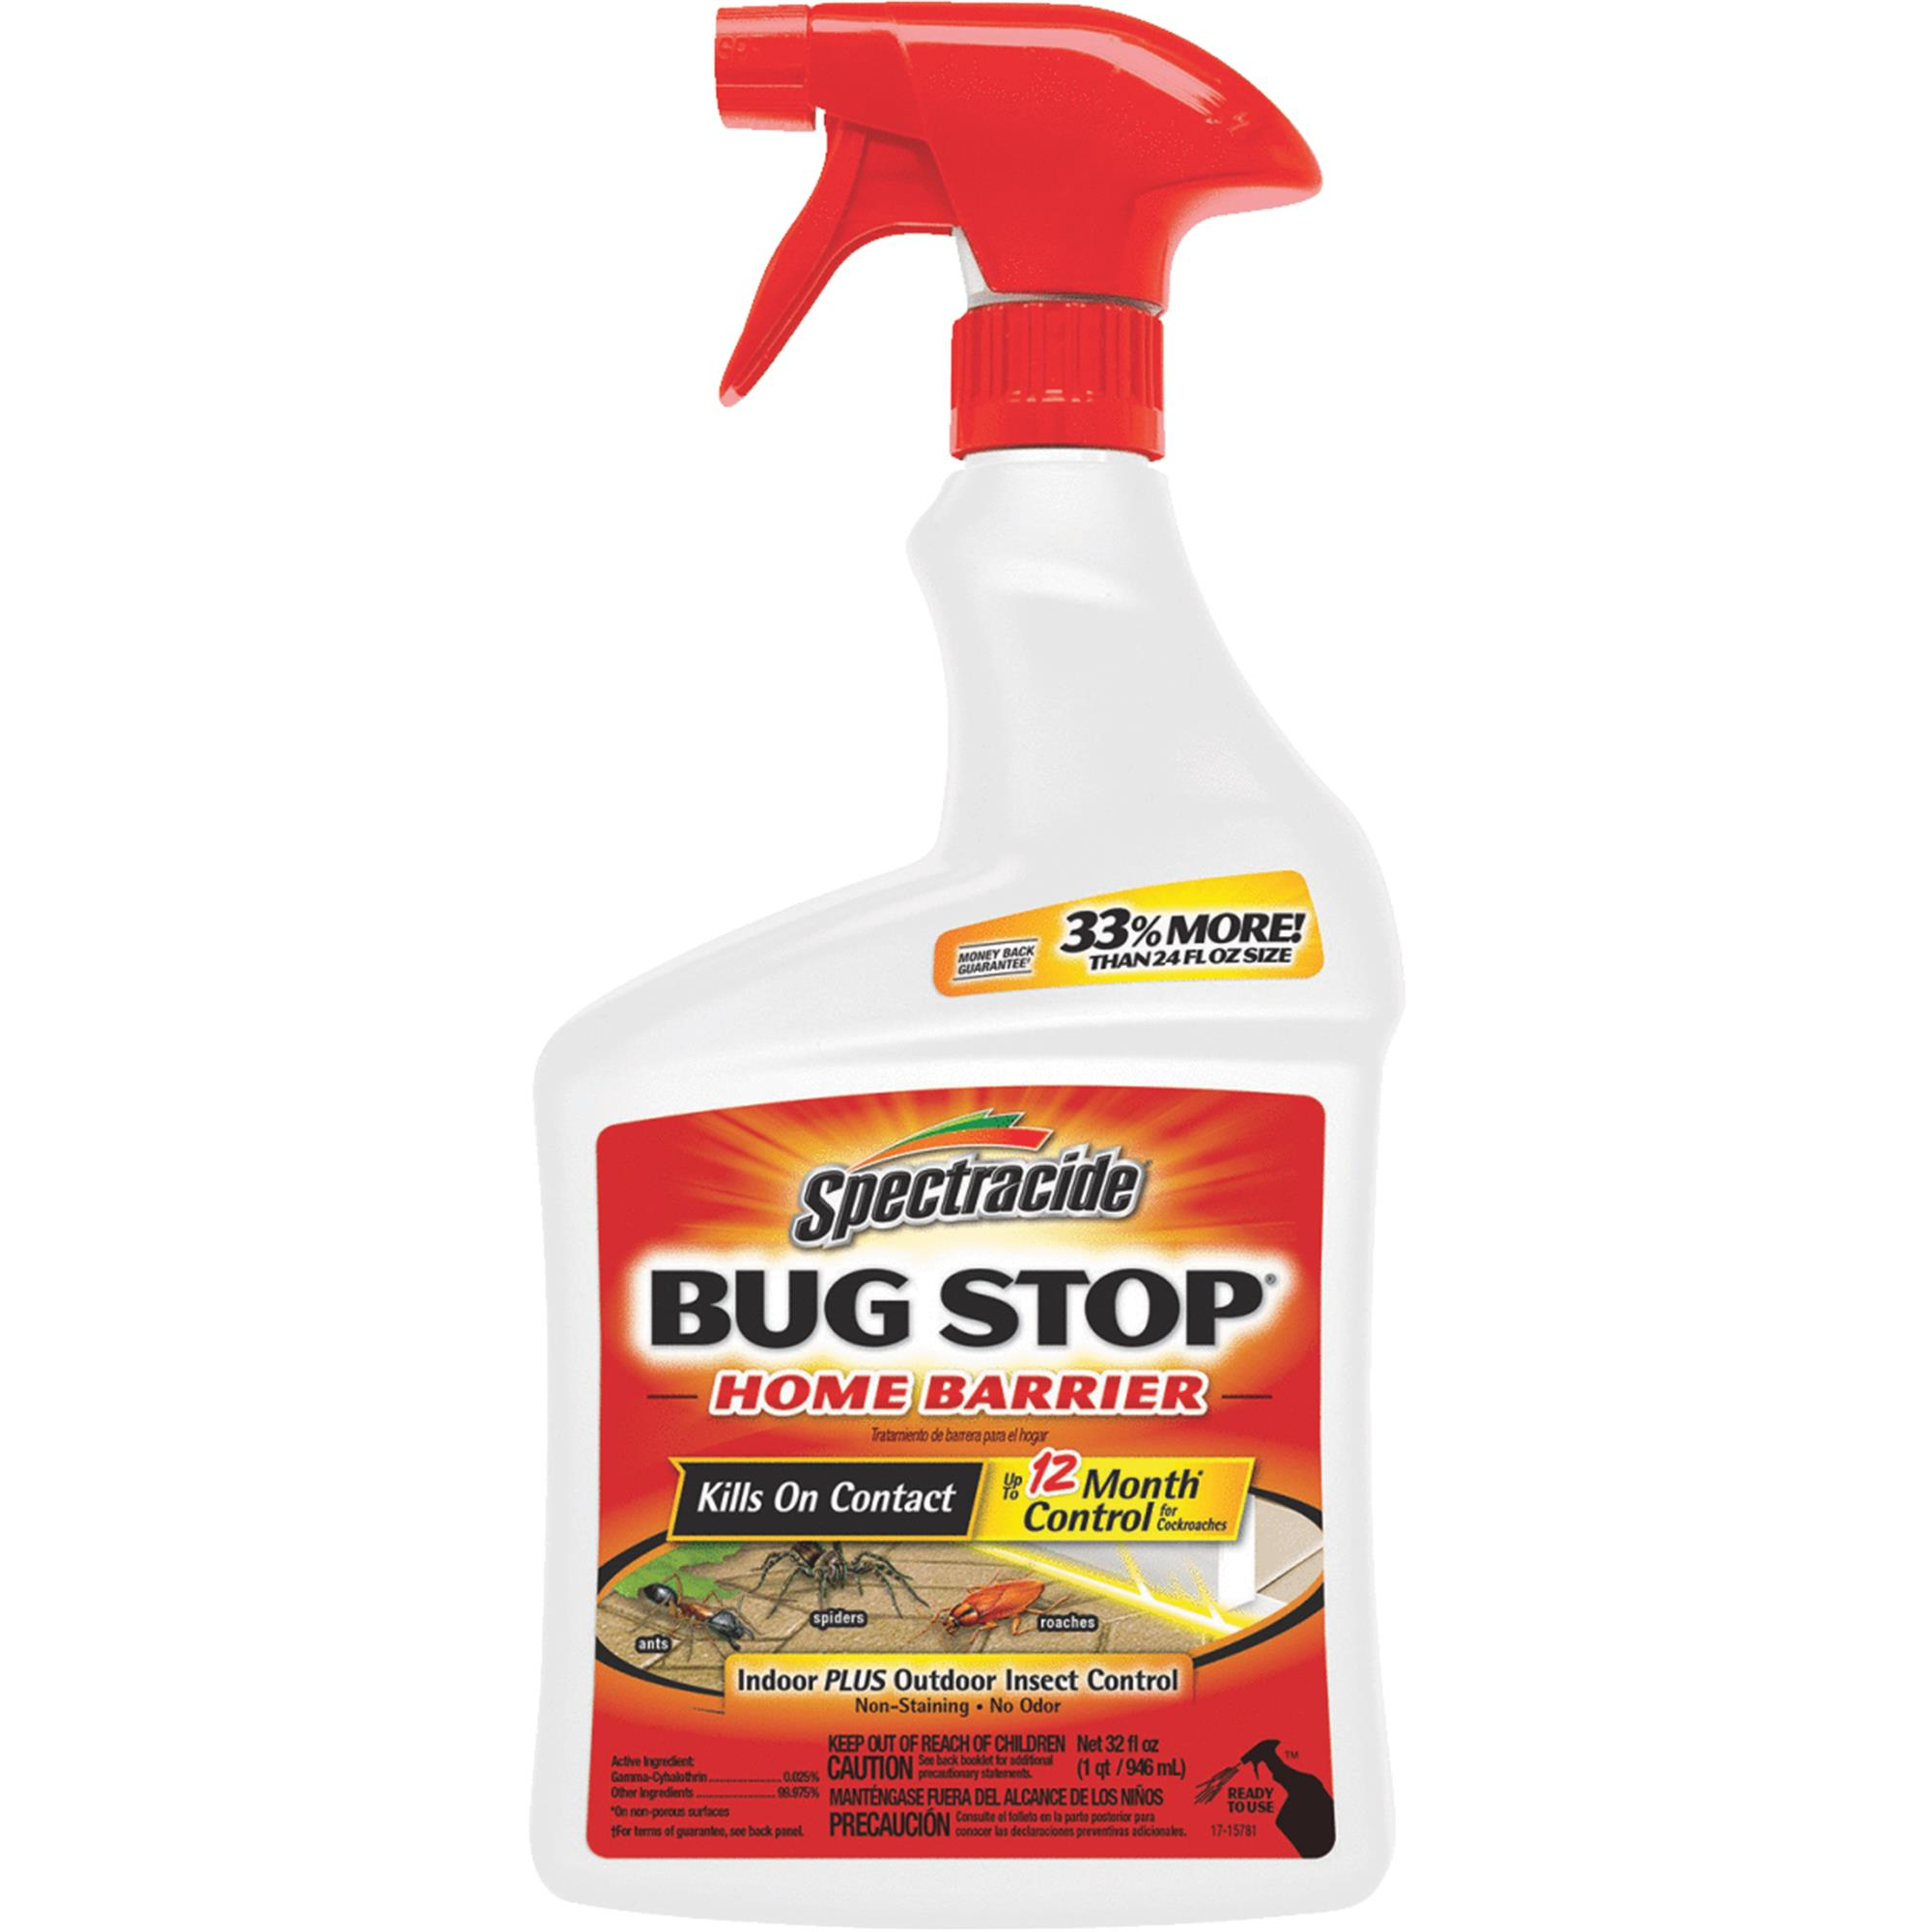 Spectracide Bug Stop Home Barrier Ready-to-Use, 32 oz